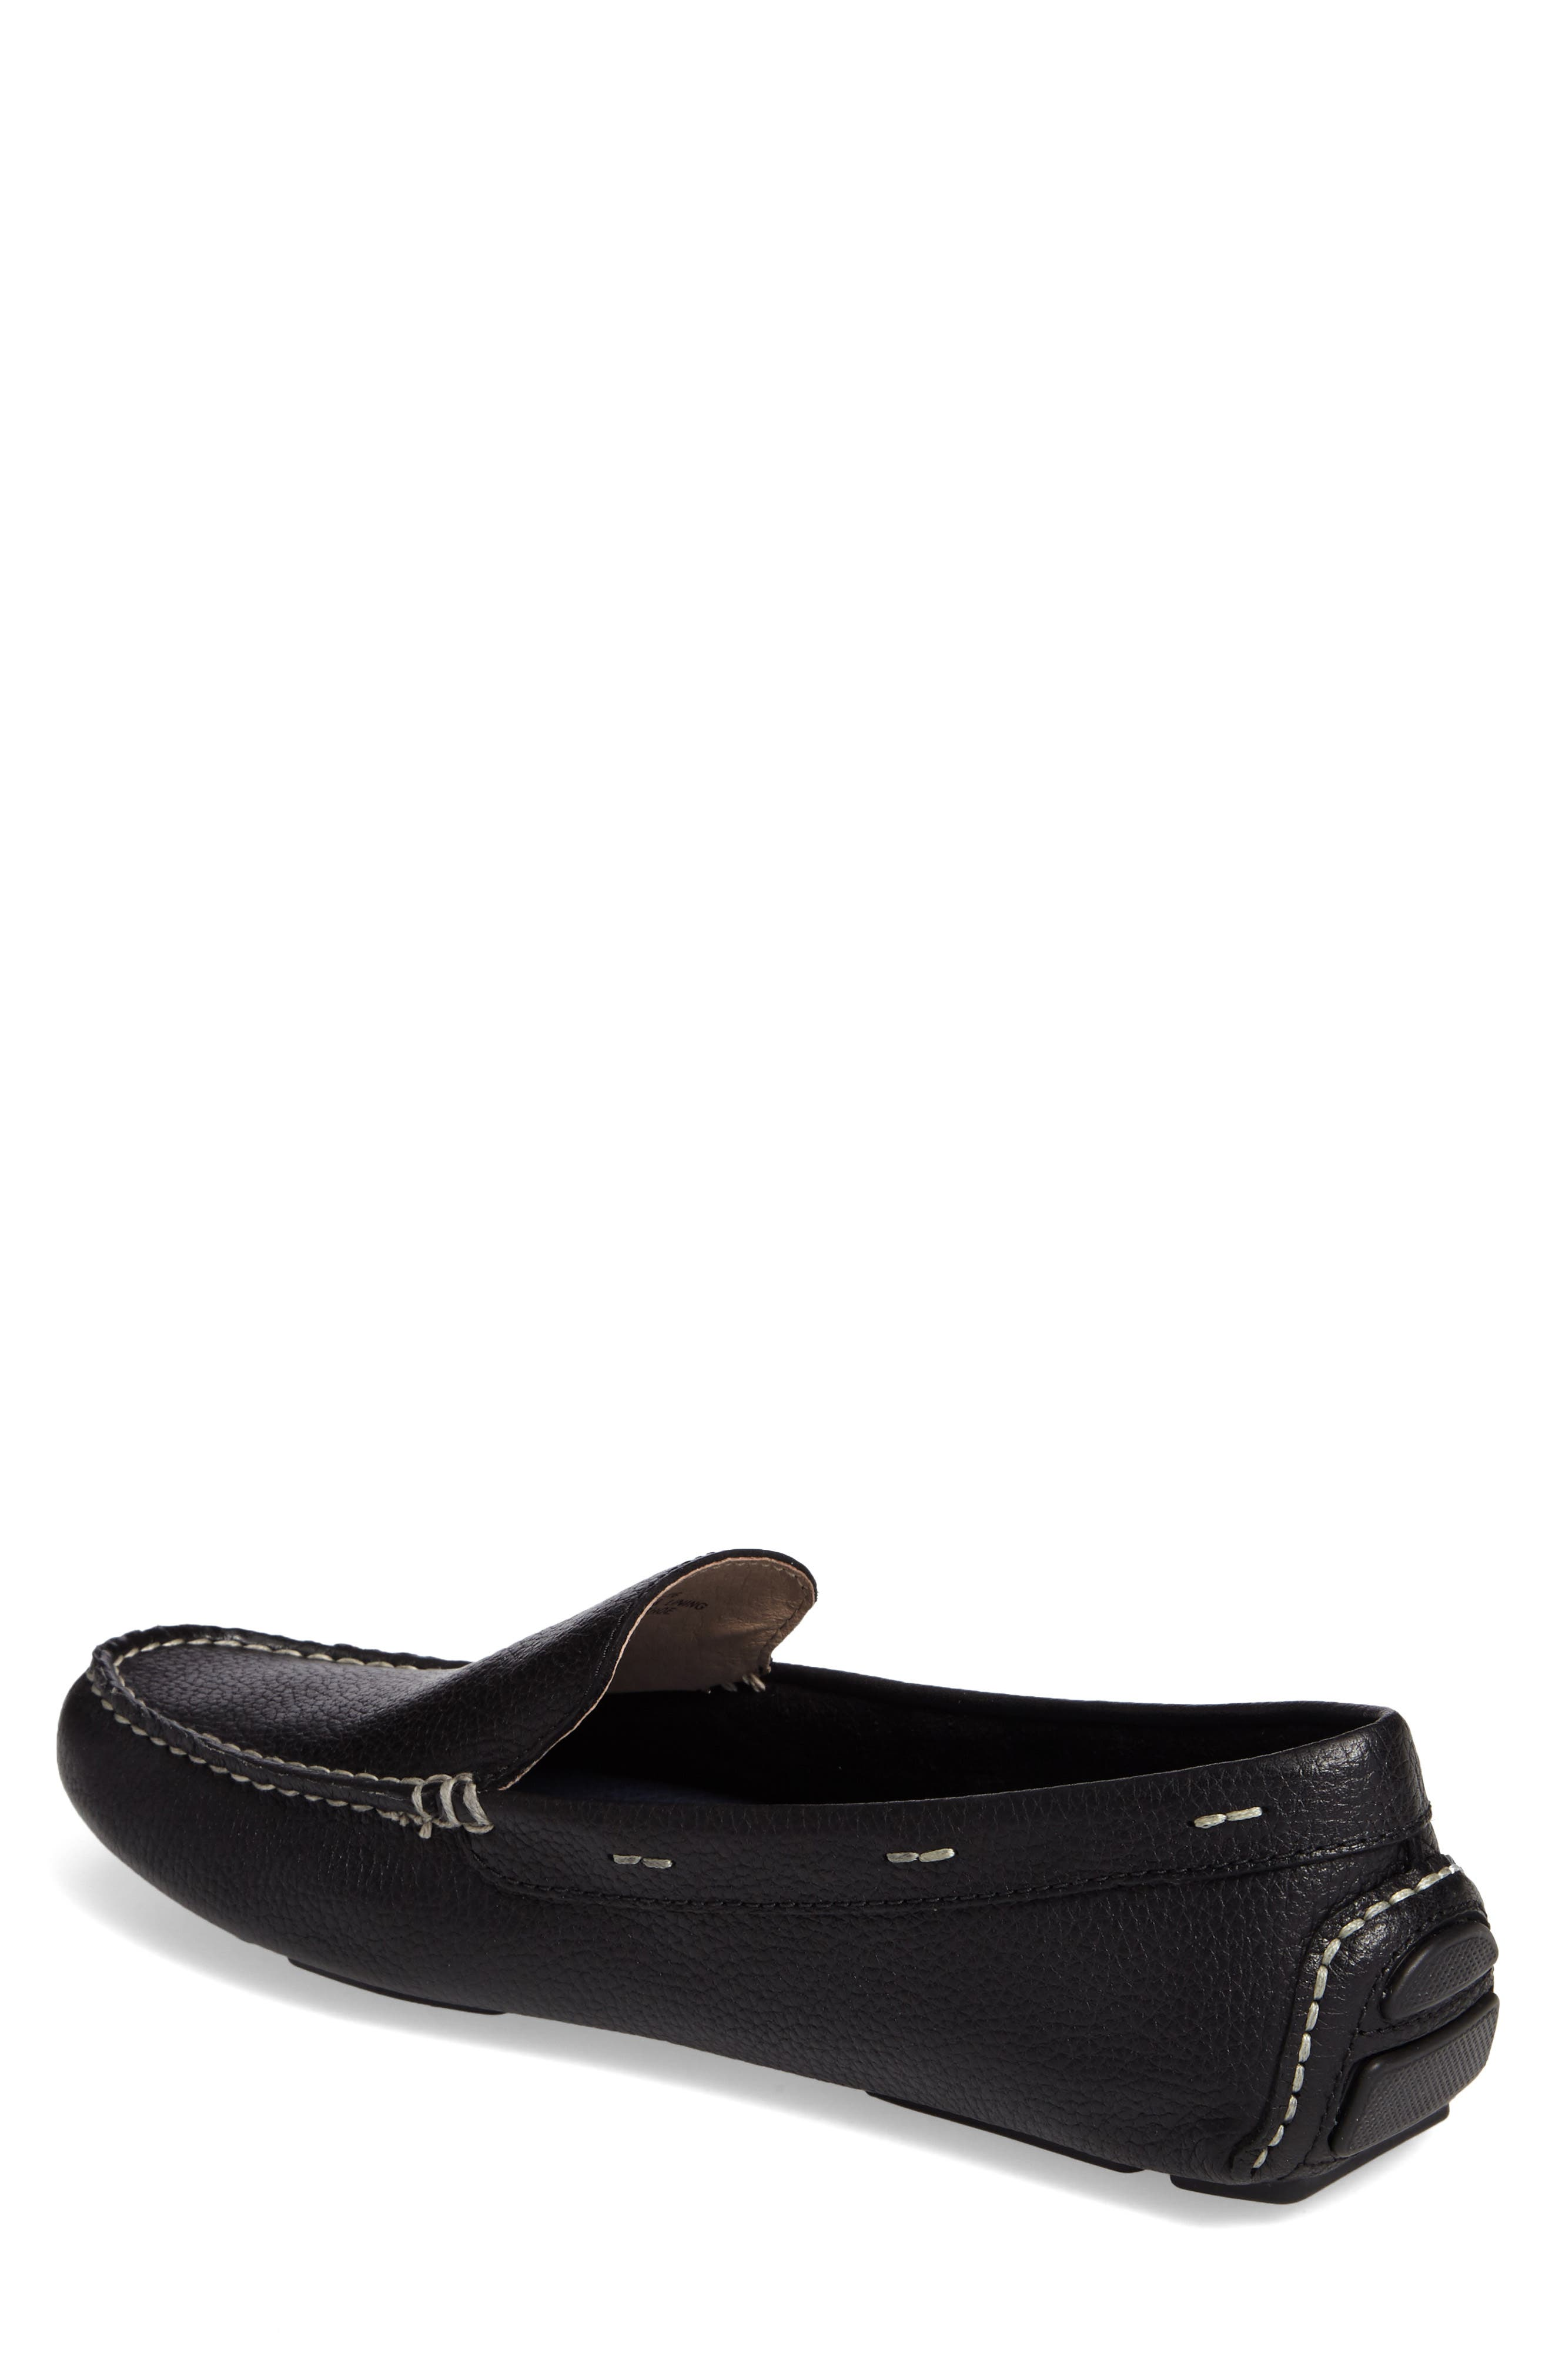 Pagota Driving Loafer,                             Alternate thumbnail 10, color,